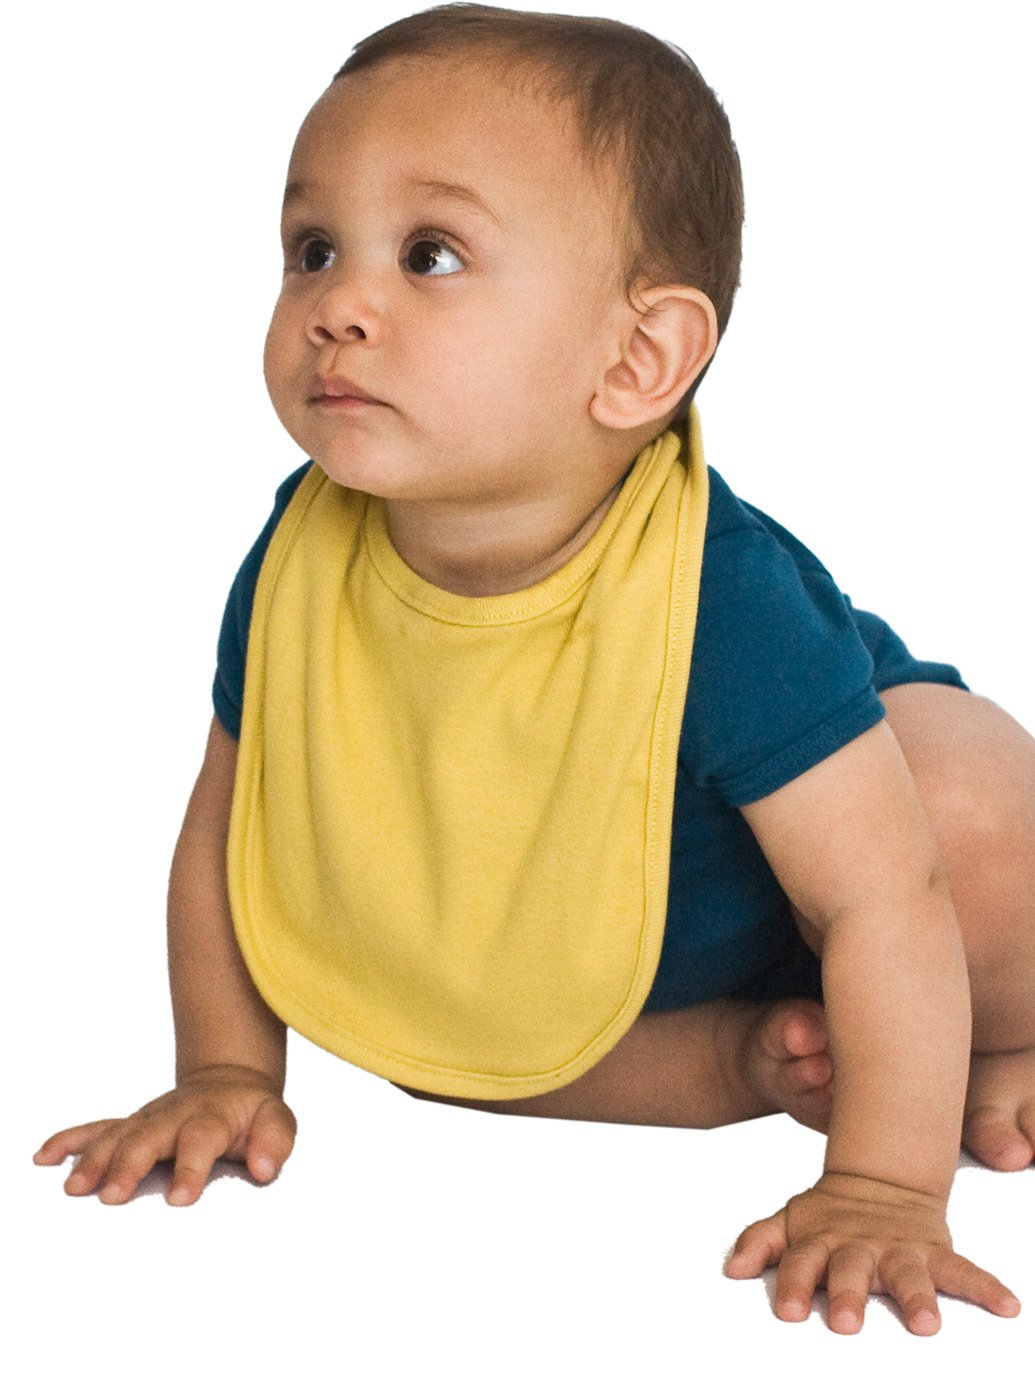 Baby Clothing. Baby clothing is an essential. Baby Clothes keep your child warm, comfortable and feeling their best. At Kohl's we offer a wide range of baby clothes styles and looks that are sure to be perfect for your little one's everyday wardrobe!